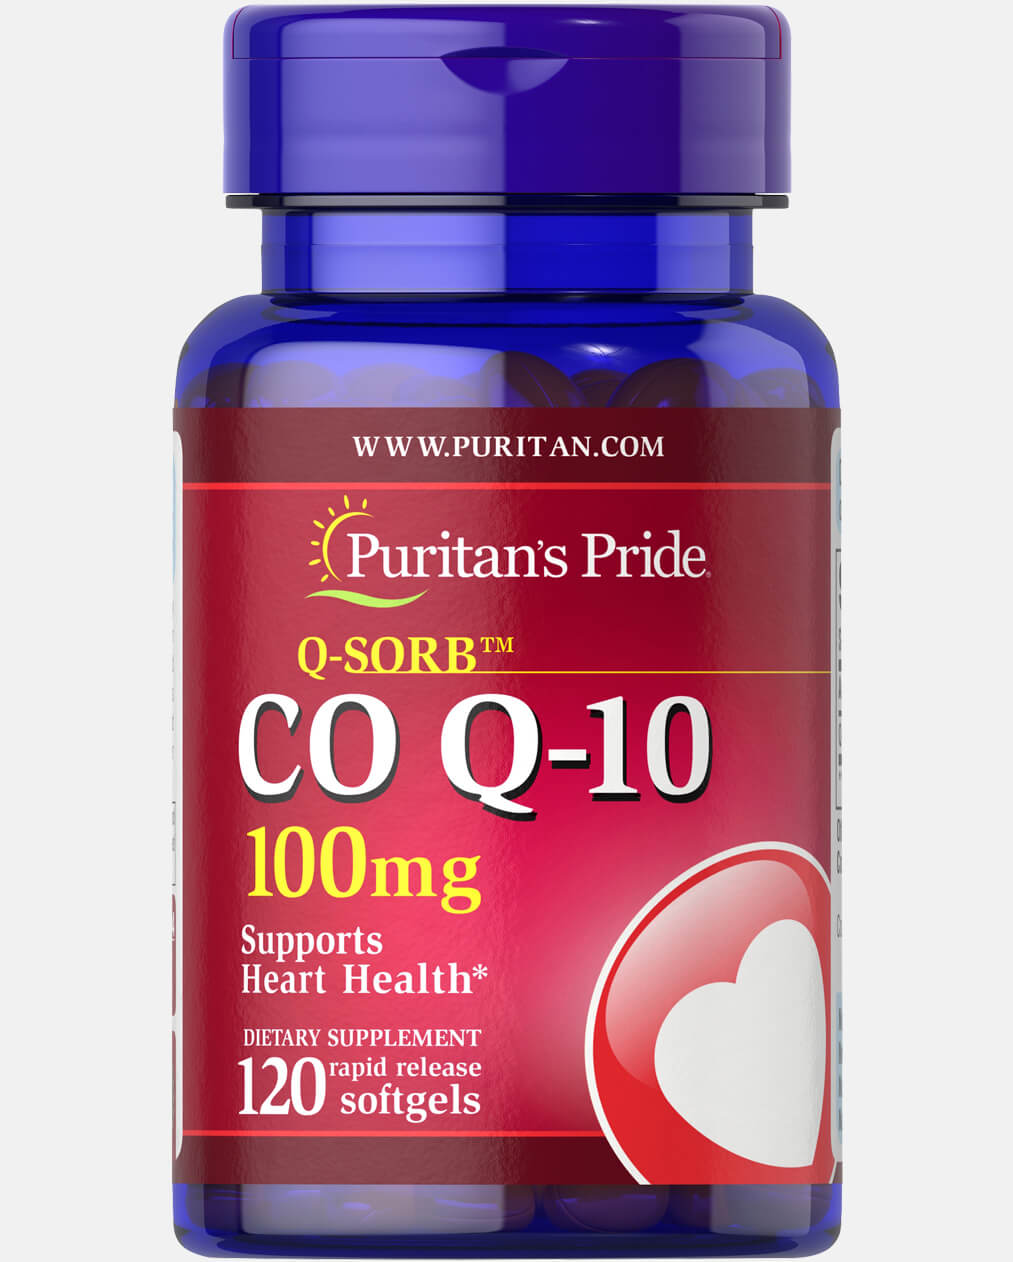 Q-SORB™ Co Q-10 100 mg